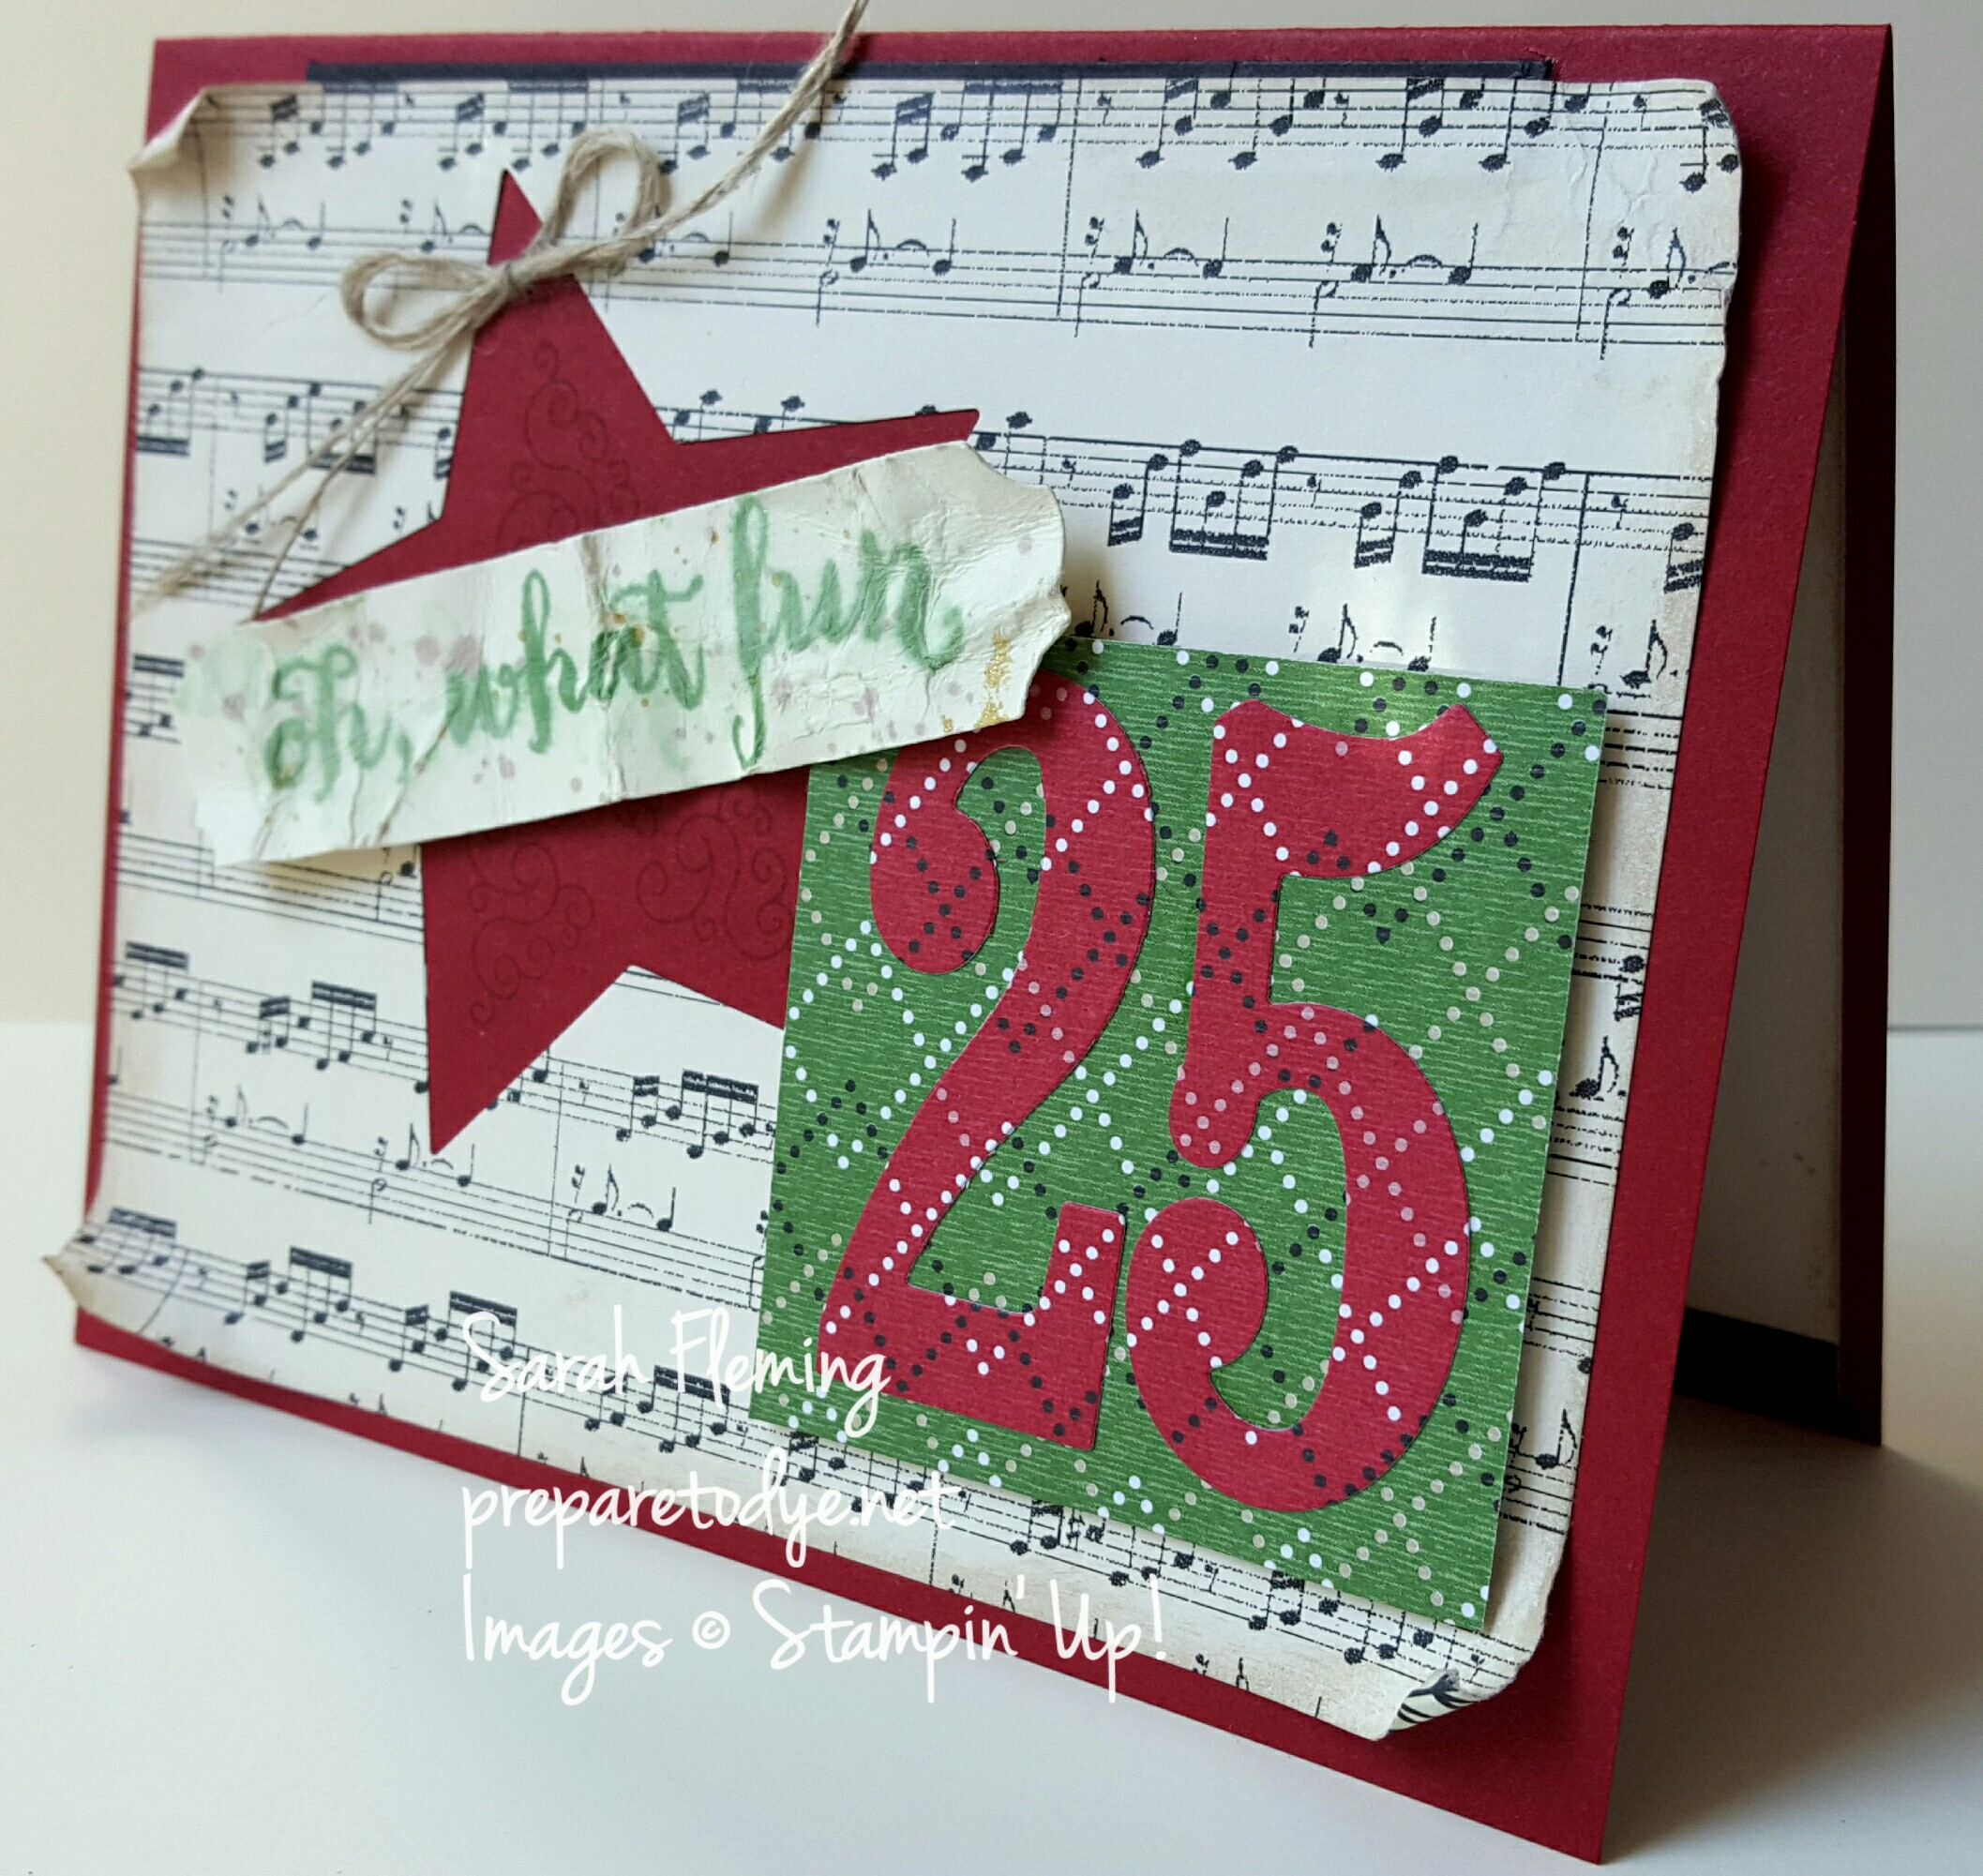 Stampin' Up! Oh What Fun and Festive Season stamps with This Christmas and Warmth & Cheer paper - Vintage Christmas card for Merry Monday #217 - Sarah Fleming - Prepare to Dye